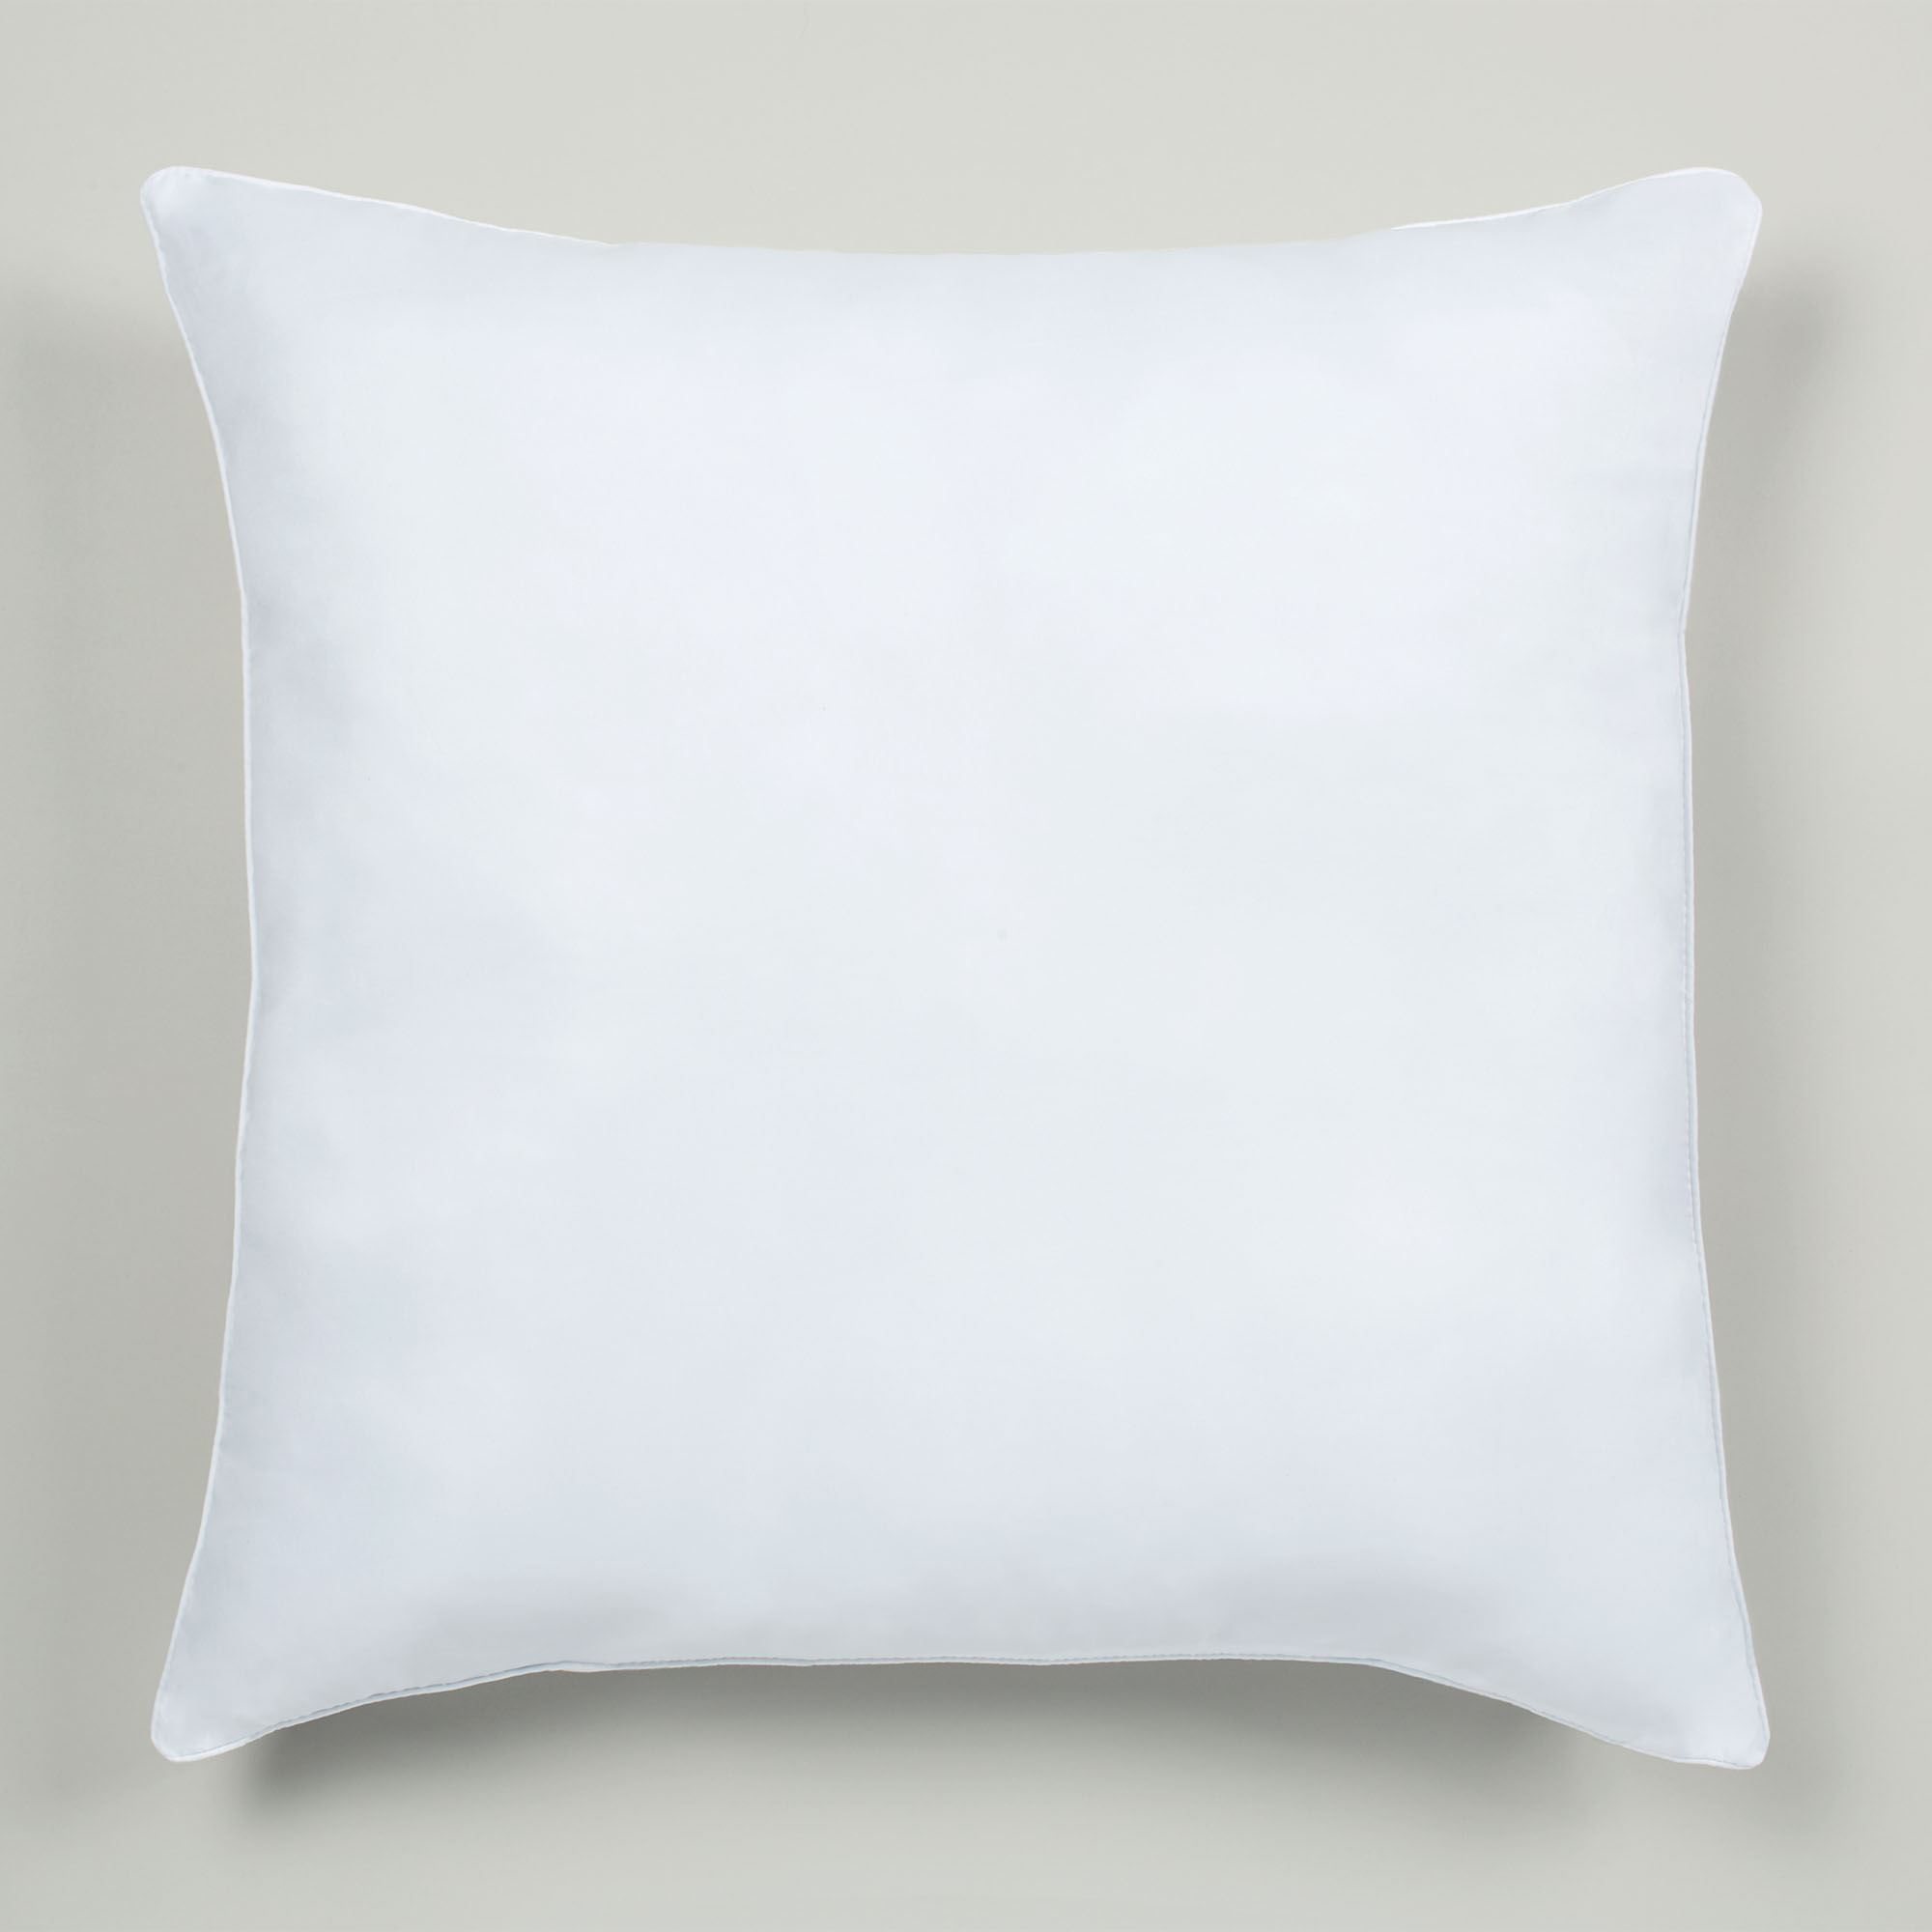 winter throw edition pillow artsy white pillows